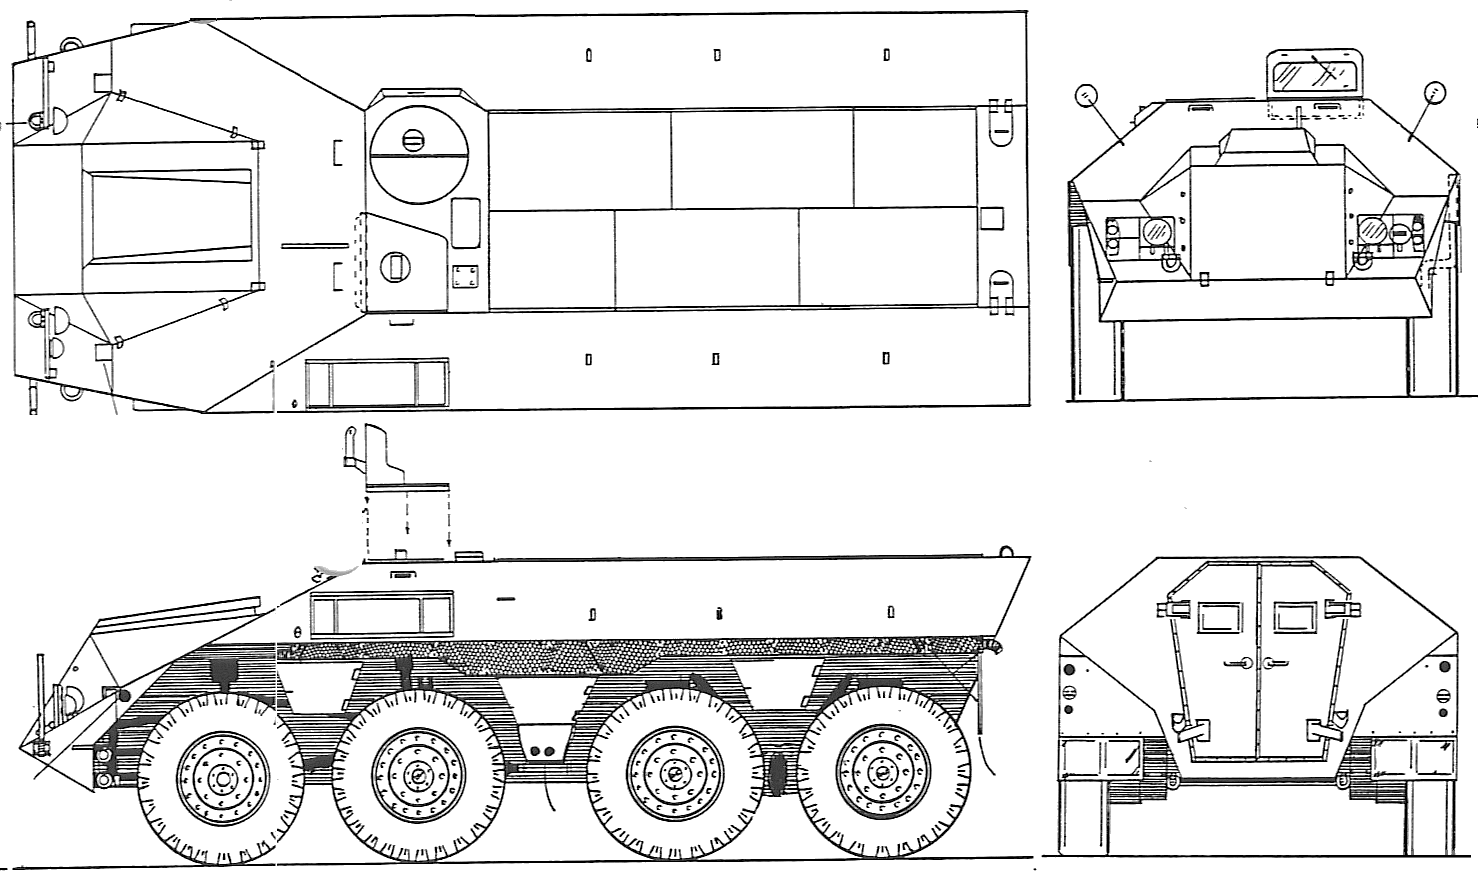 DAF YP-408 blueprint